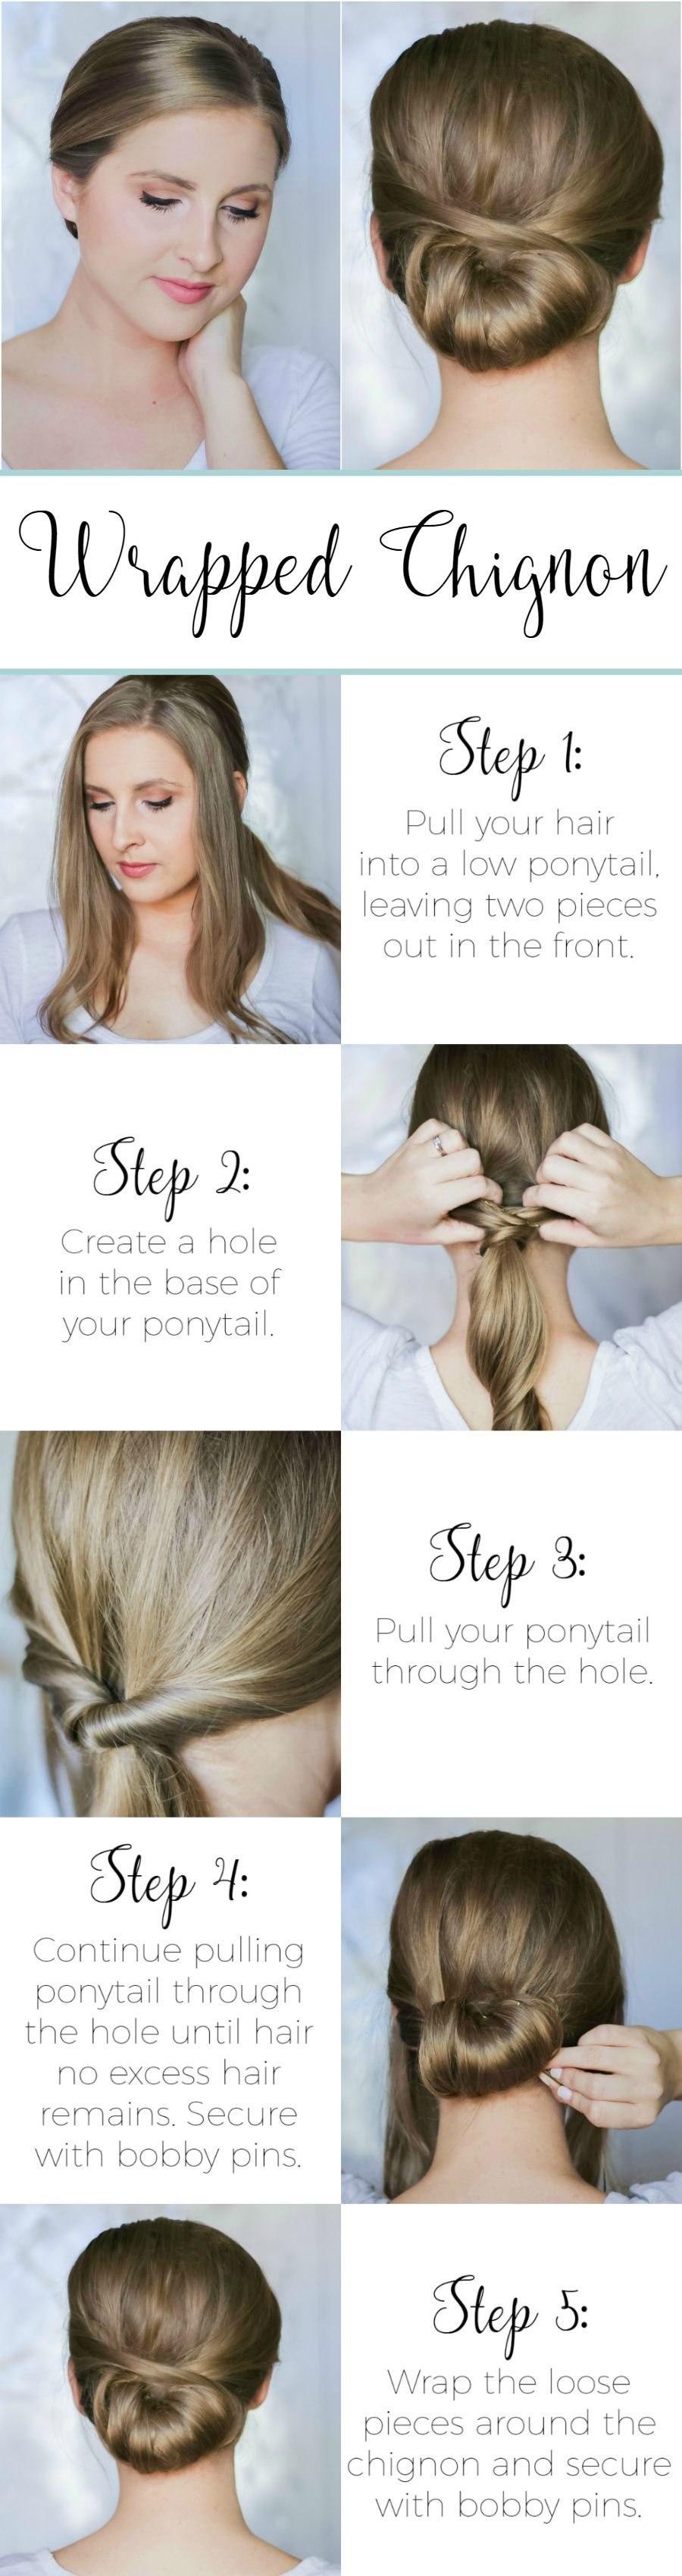 easy second-day hairstyles | hair | long hair styles, hair